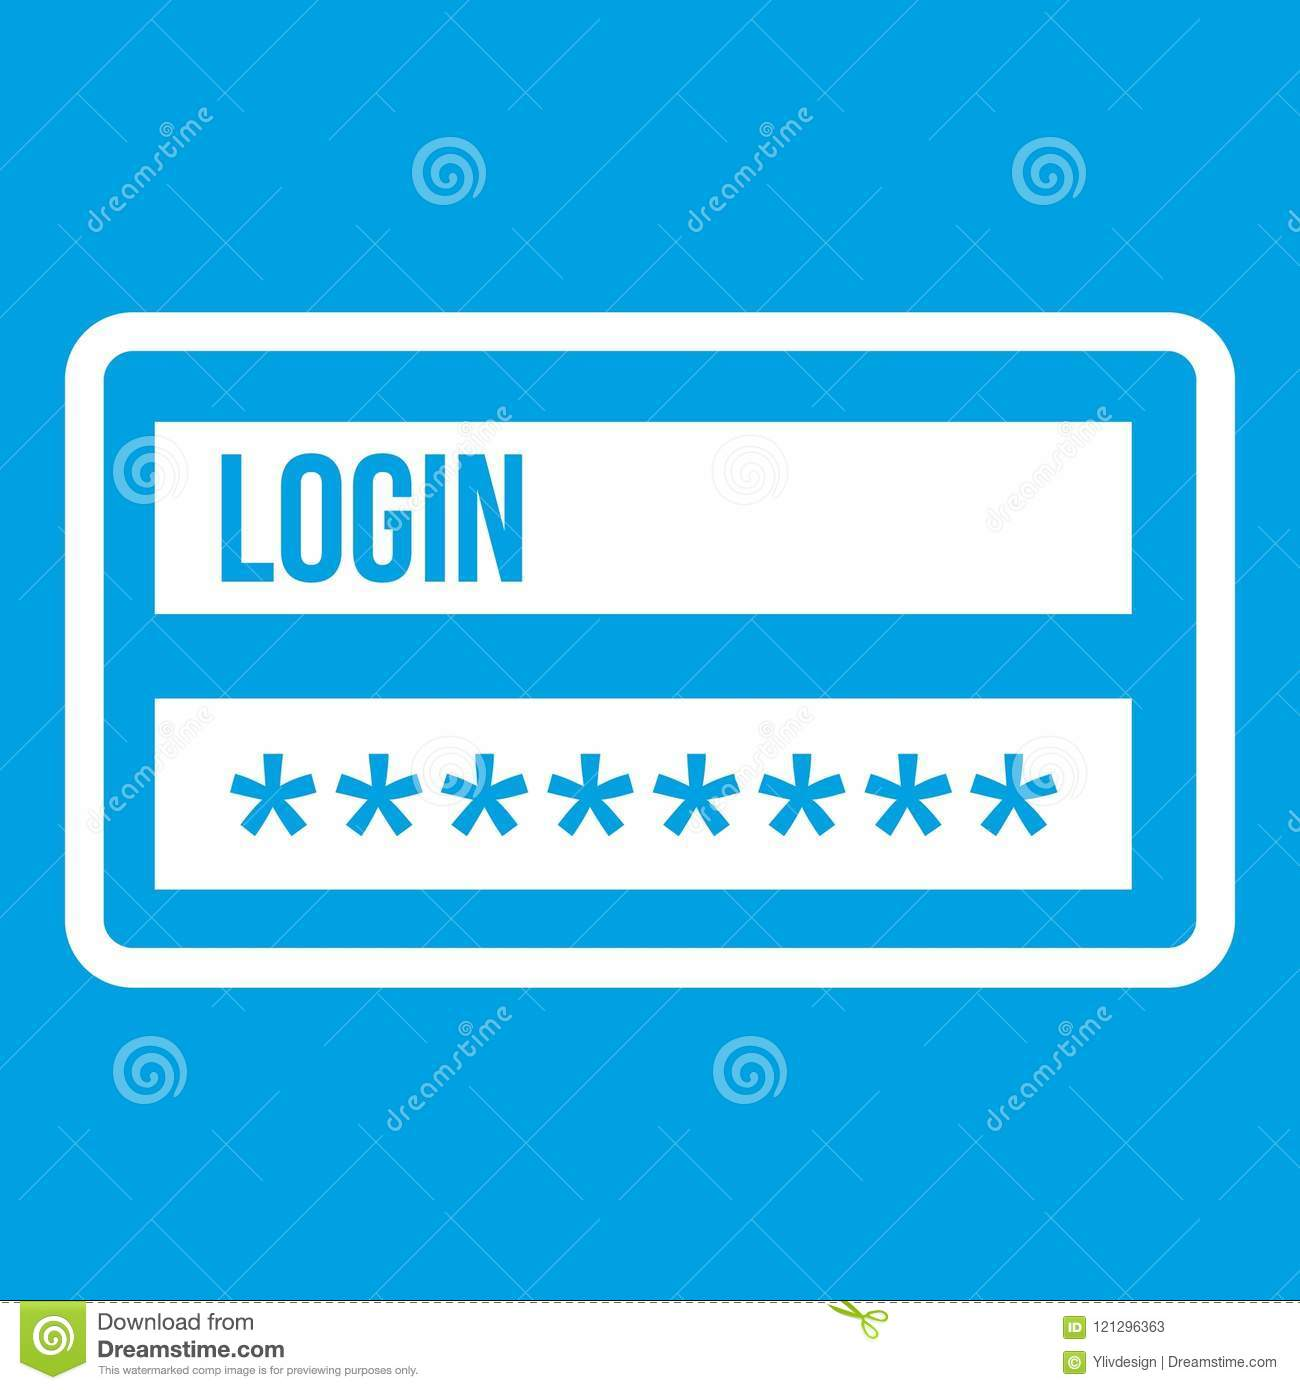 Login And Password Icon White Stock Vector - Illustration of